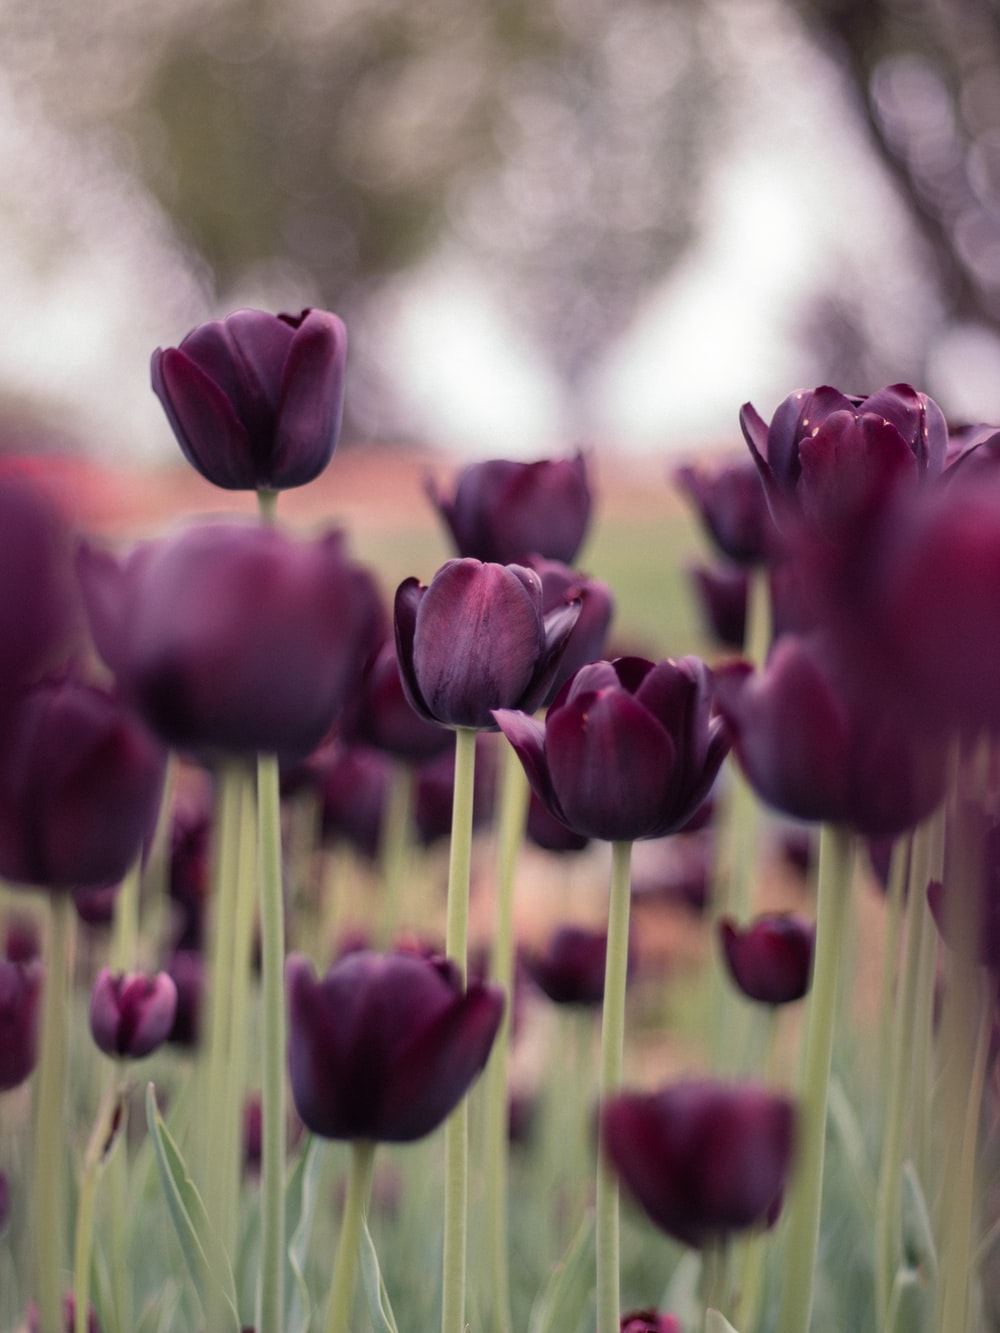 purple tulips in bloom during daytime